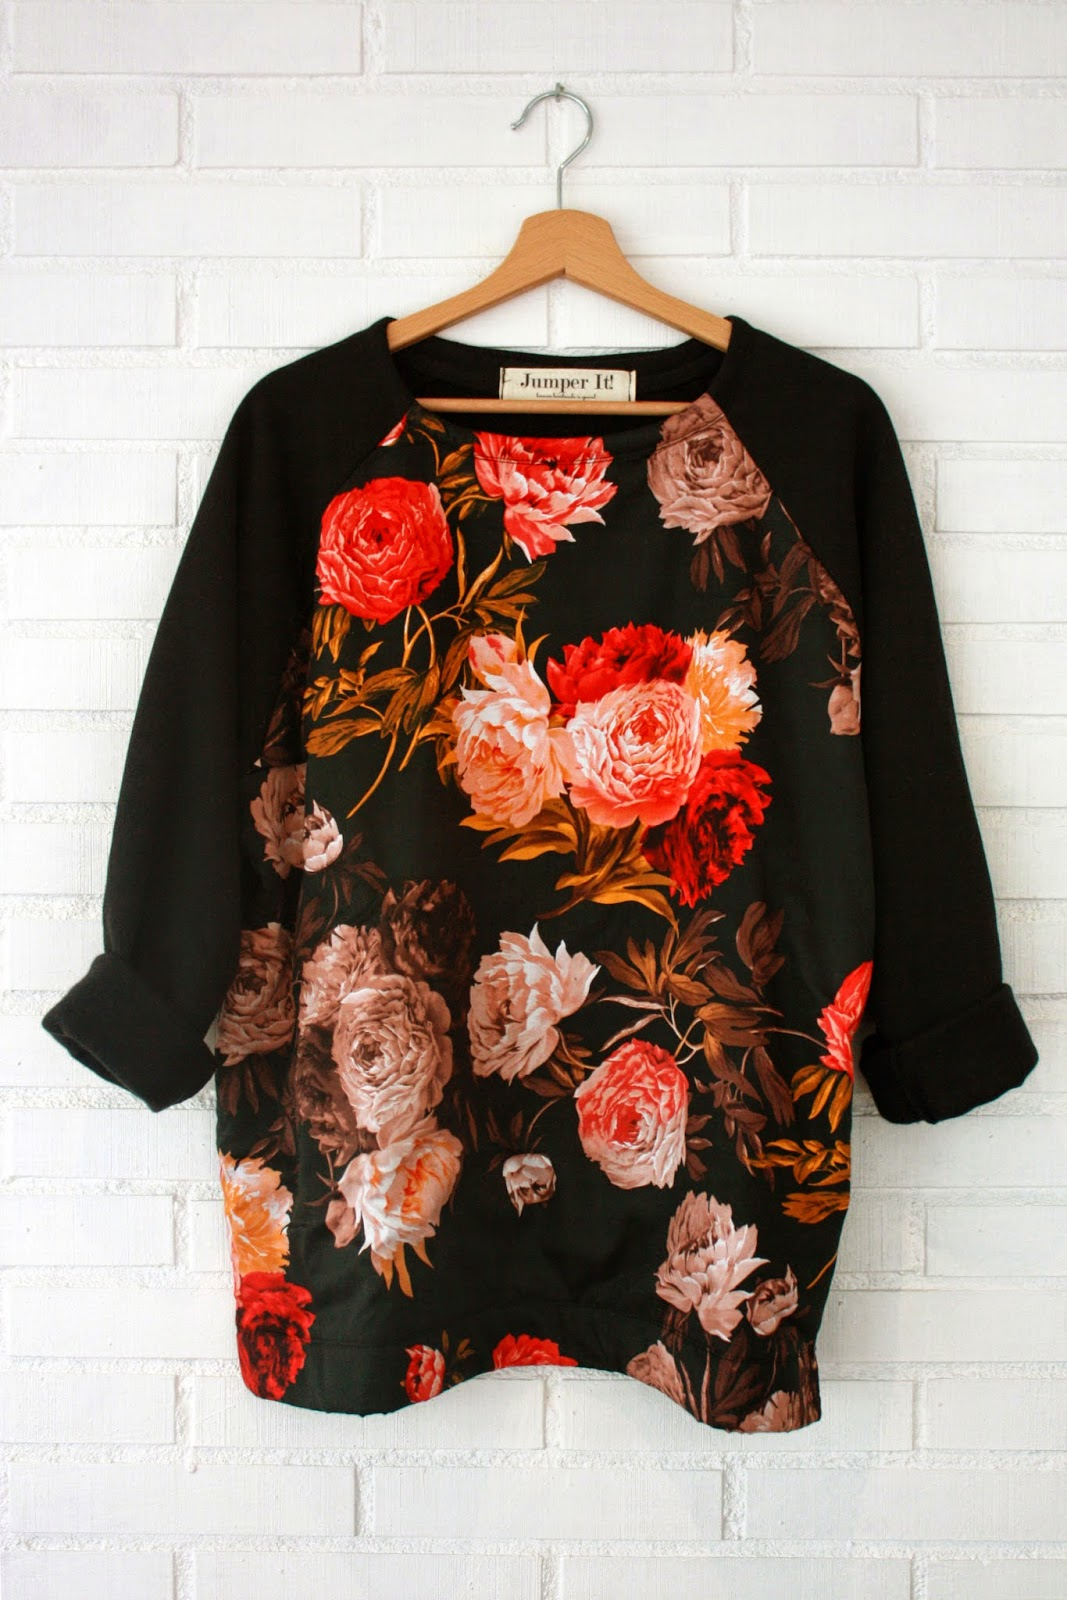 Sudadera con frente de seda estampada en flores - Jumper It